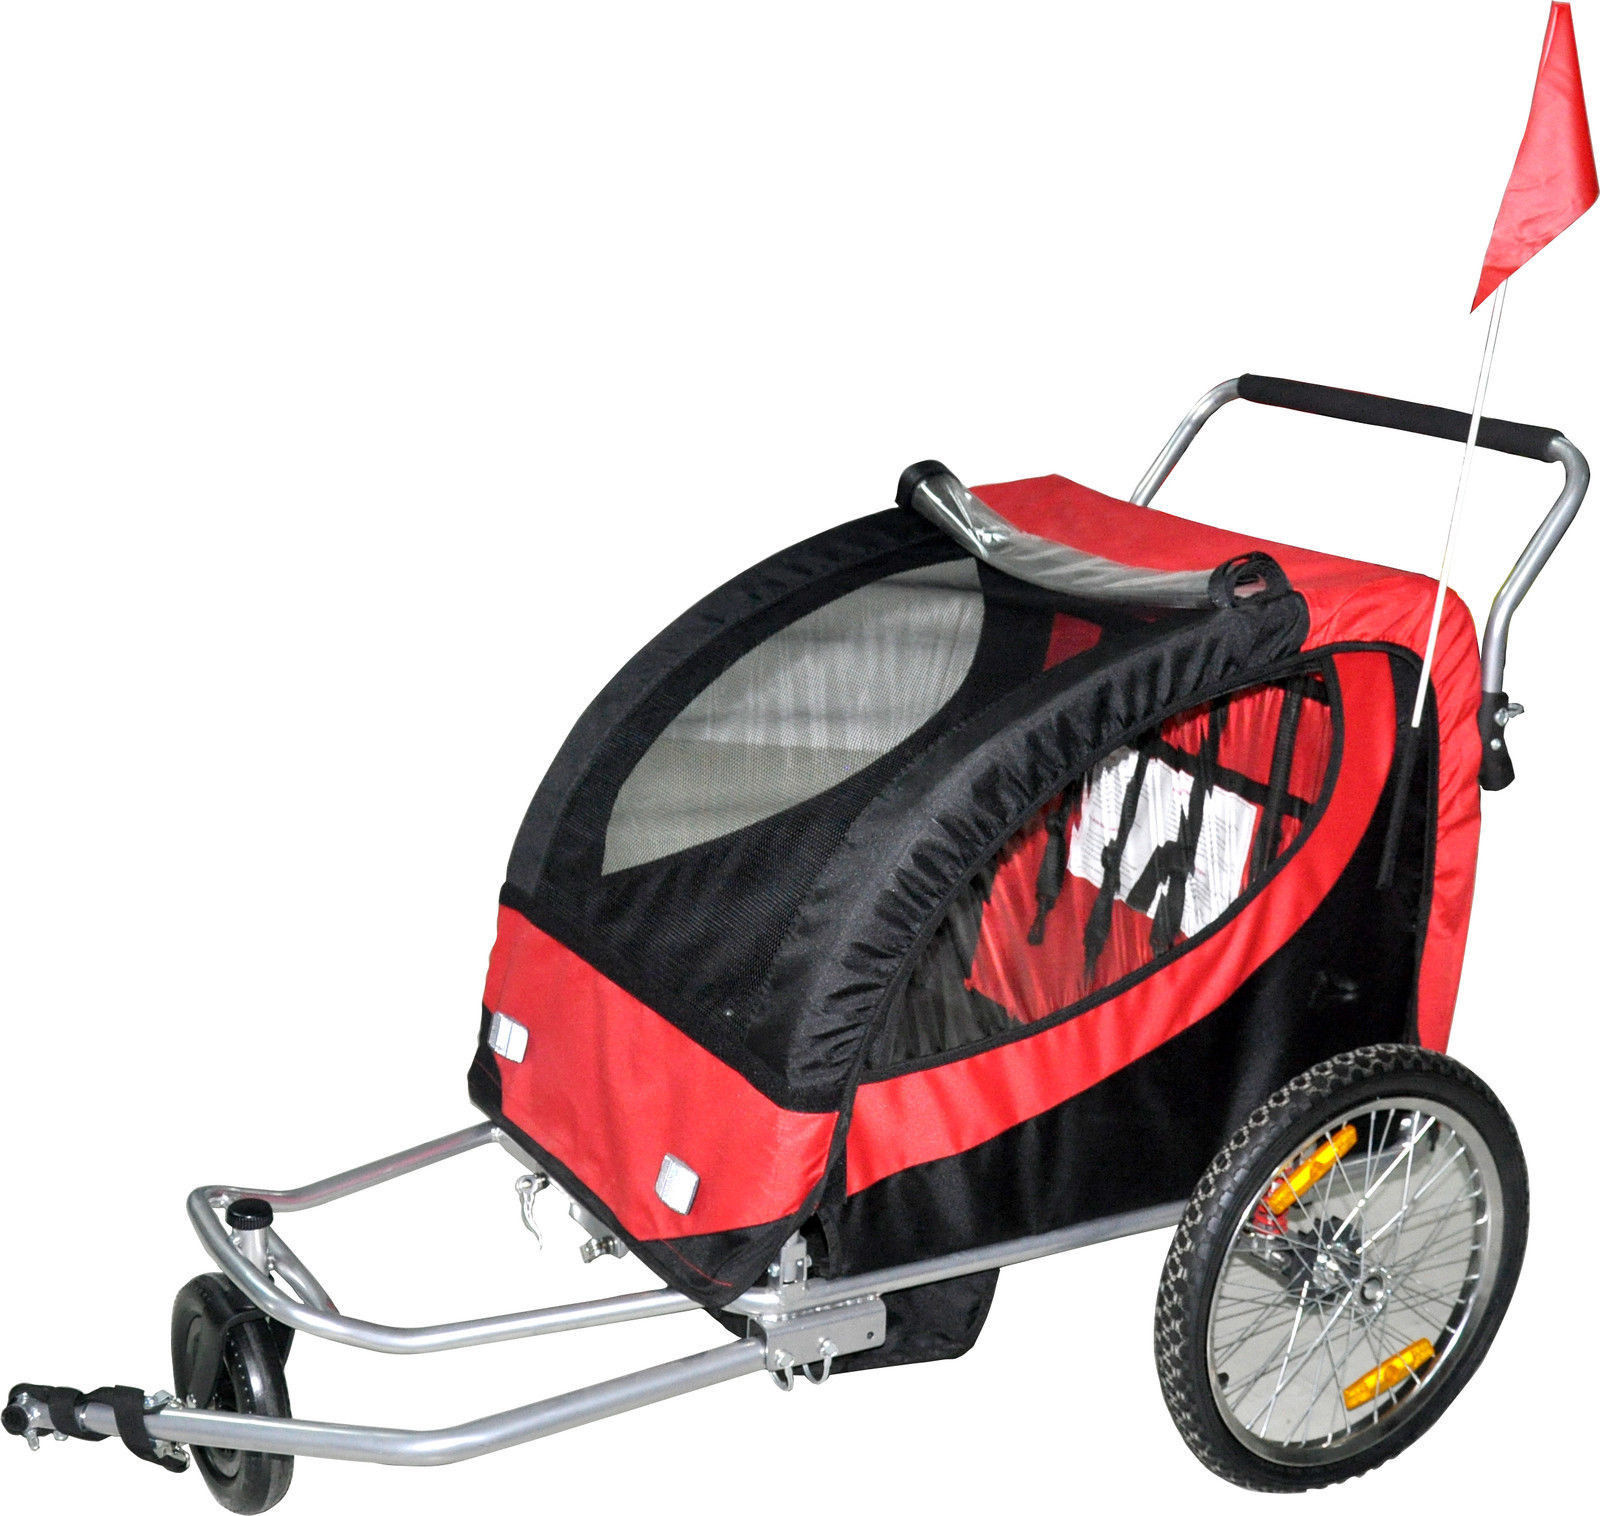 Pet Stroller Houston Double Swivel Red 3in1 Bicycle Bike Trailer Baby Stroller